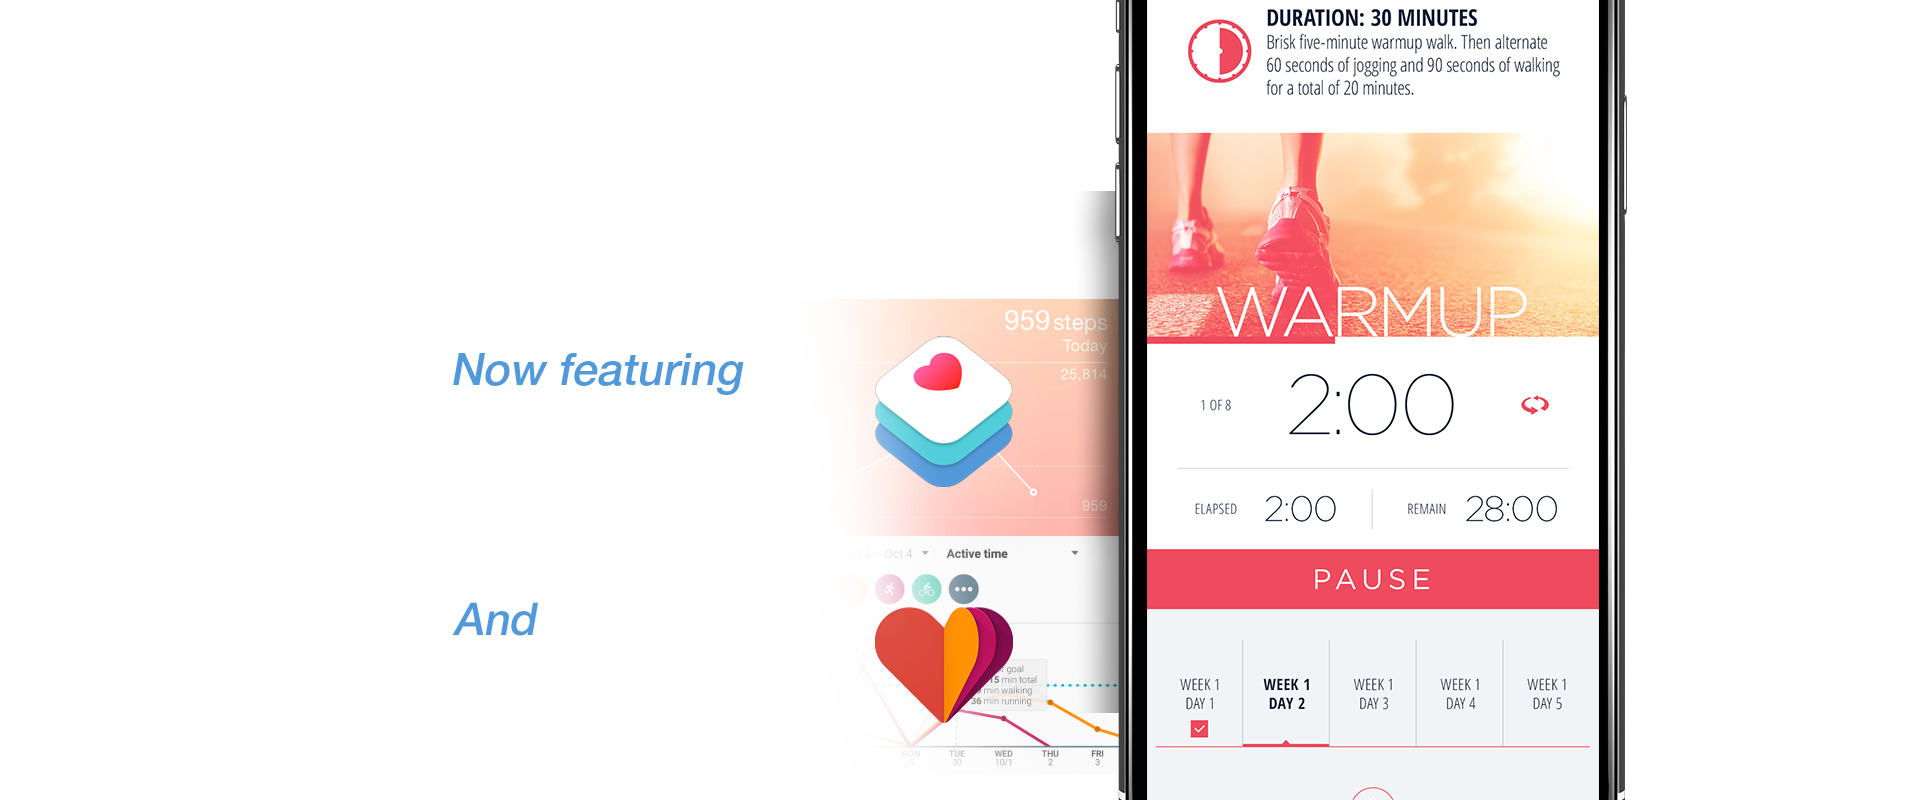 C25k 5k Trainer The 1 Couch To 5k Running App On Iphone